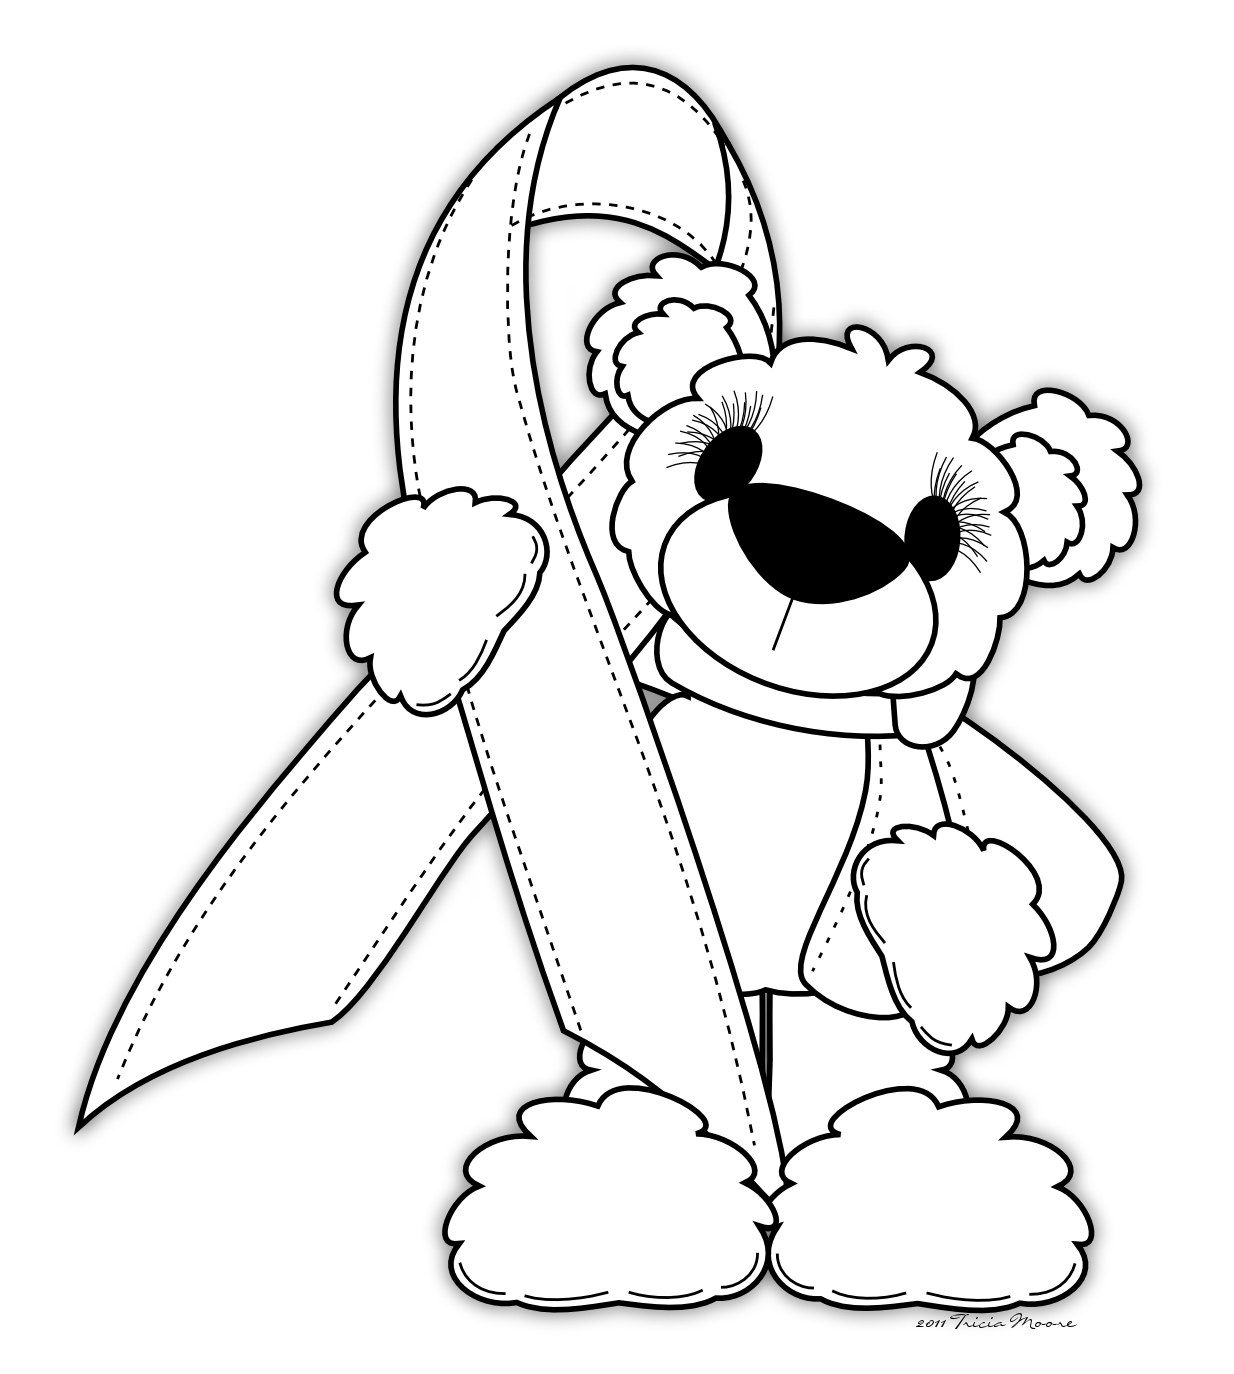 coloring sheet breast cancer awareness coloring pages breast cancer awareness coloring page coloring home coloring awareness cancer coloring breast sheet pages